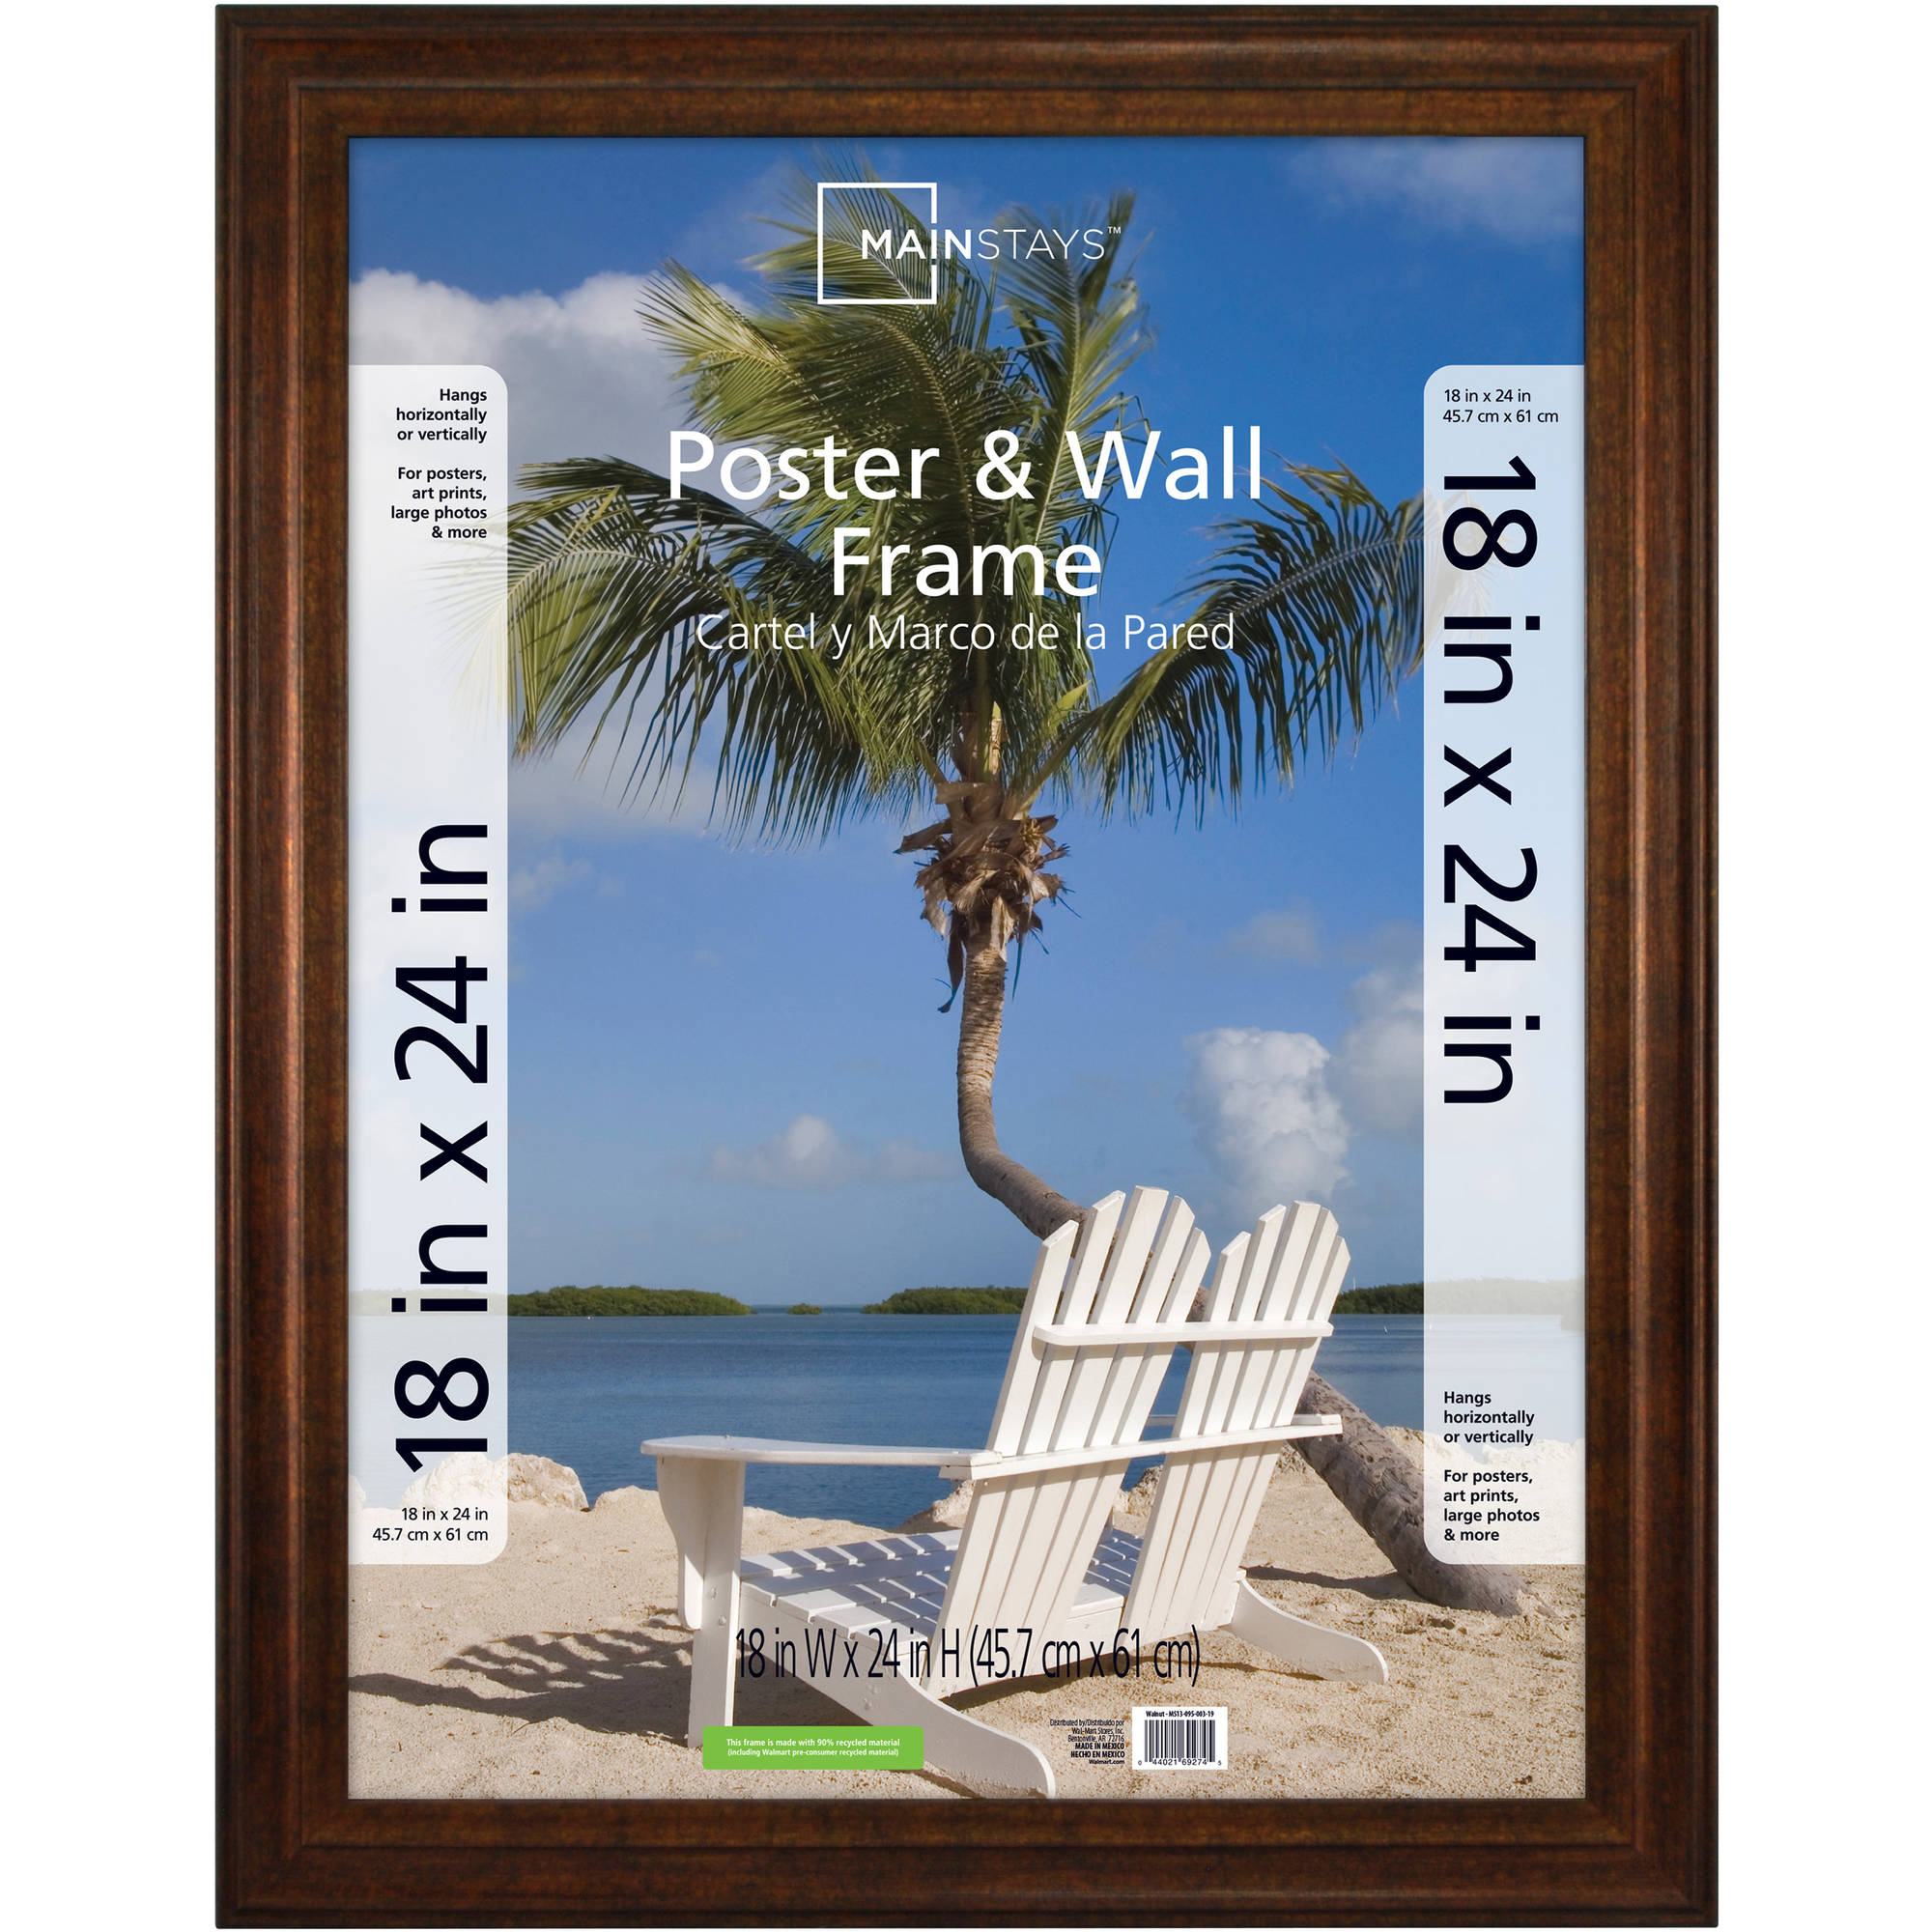 Mainstays Bronze Poster Frame, Available in Multiple Sizes